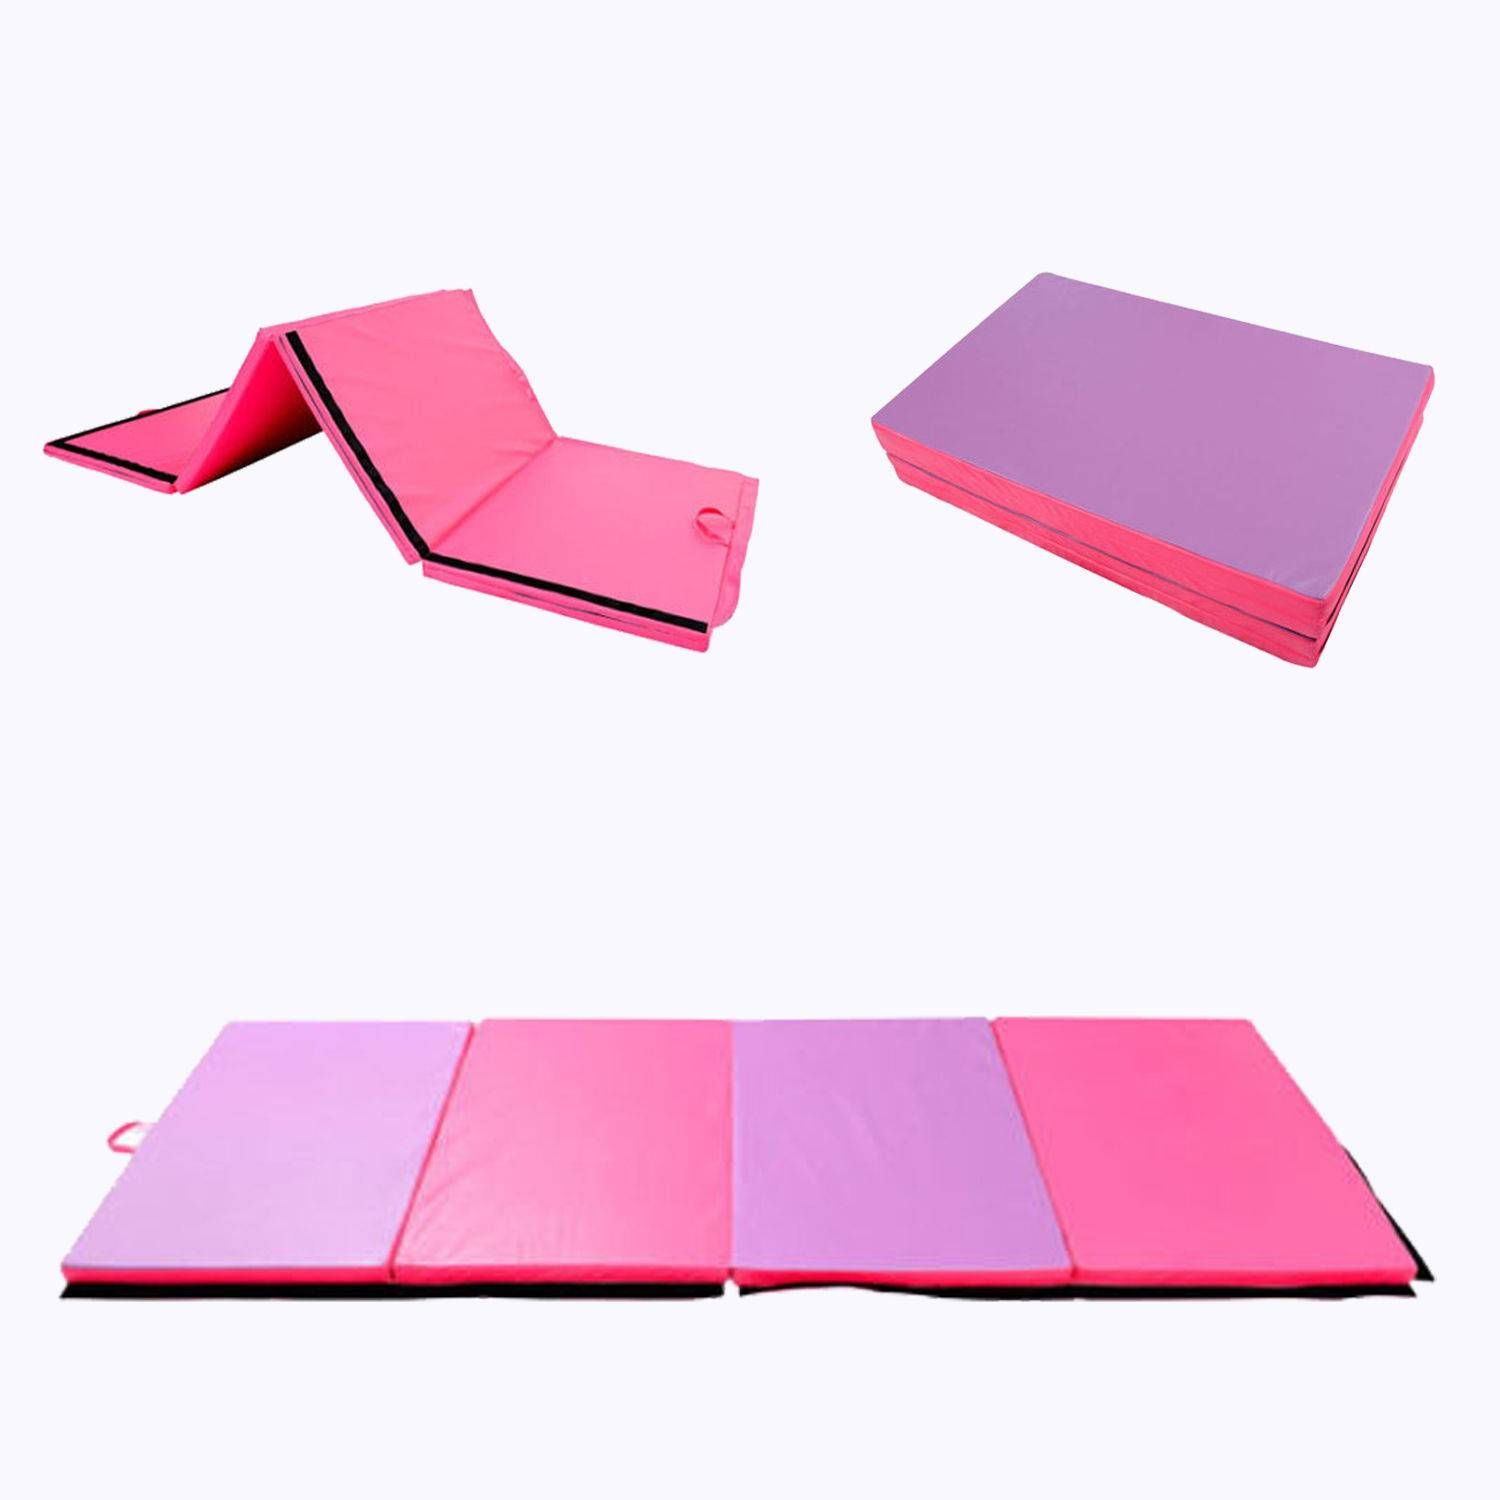 images panel gymnastics toddler exercise children tumbling mats section mat kids ideas folding softzone diy gym amazing toys